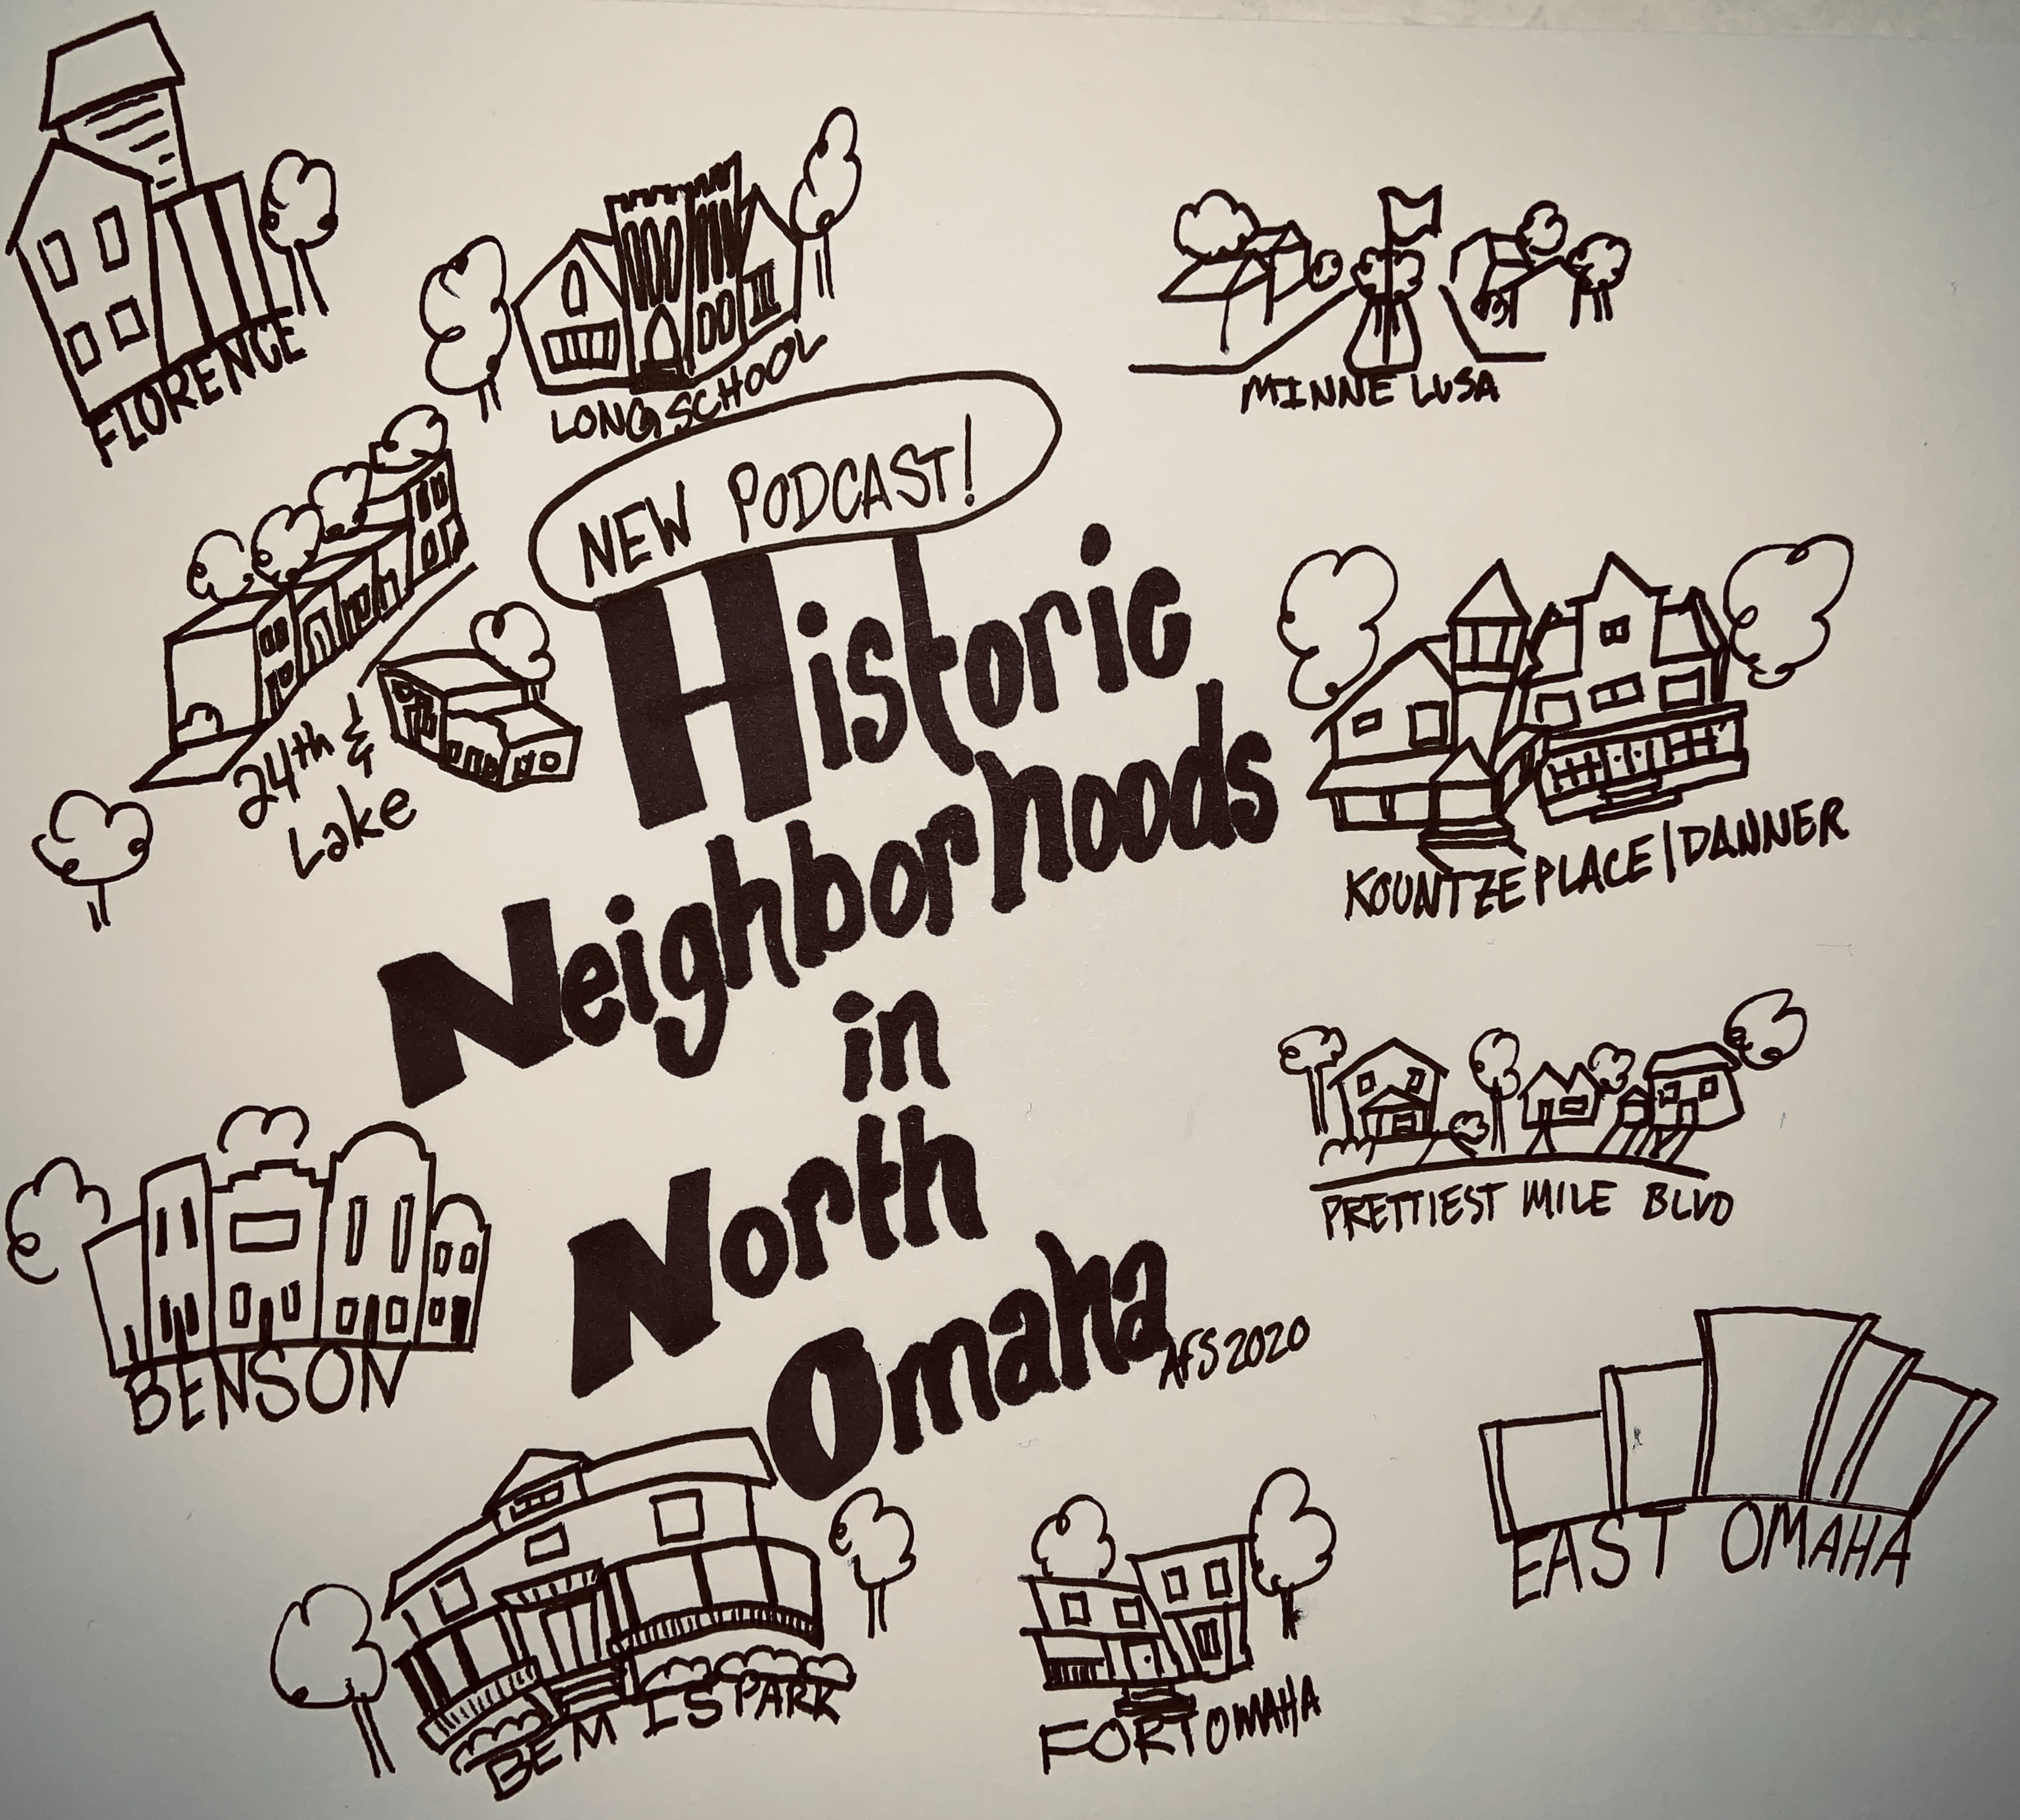 Podcast about Historic Neighborhoods in North Omaha by Adam Fletcher Sasse and Steve Sleeper